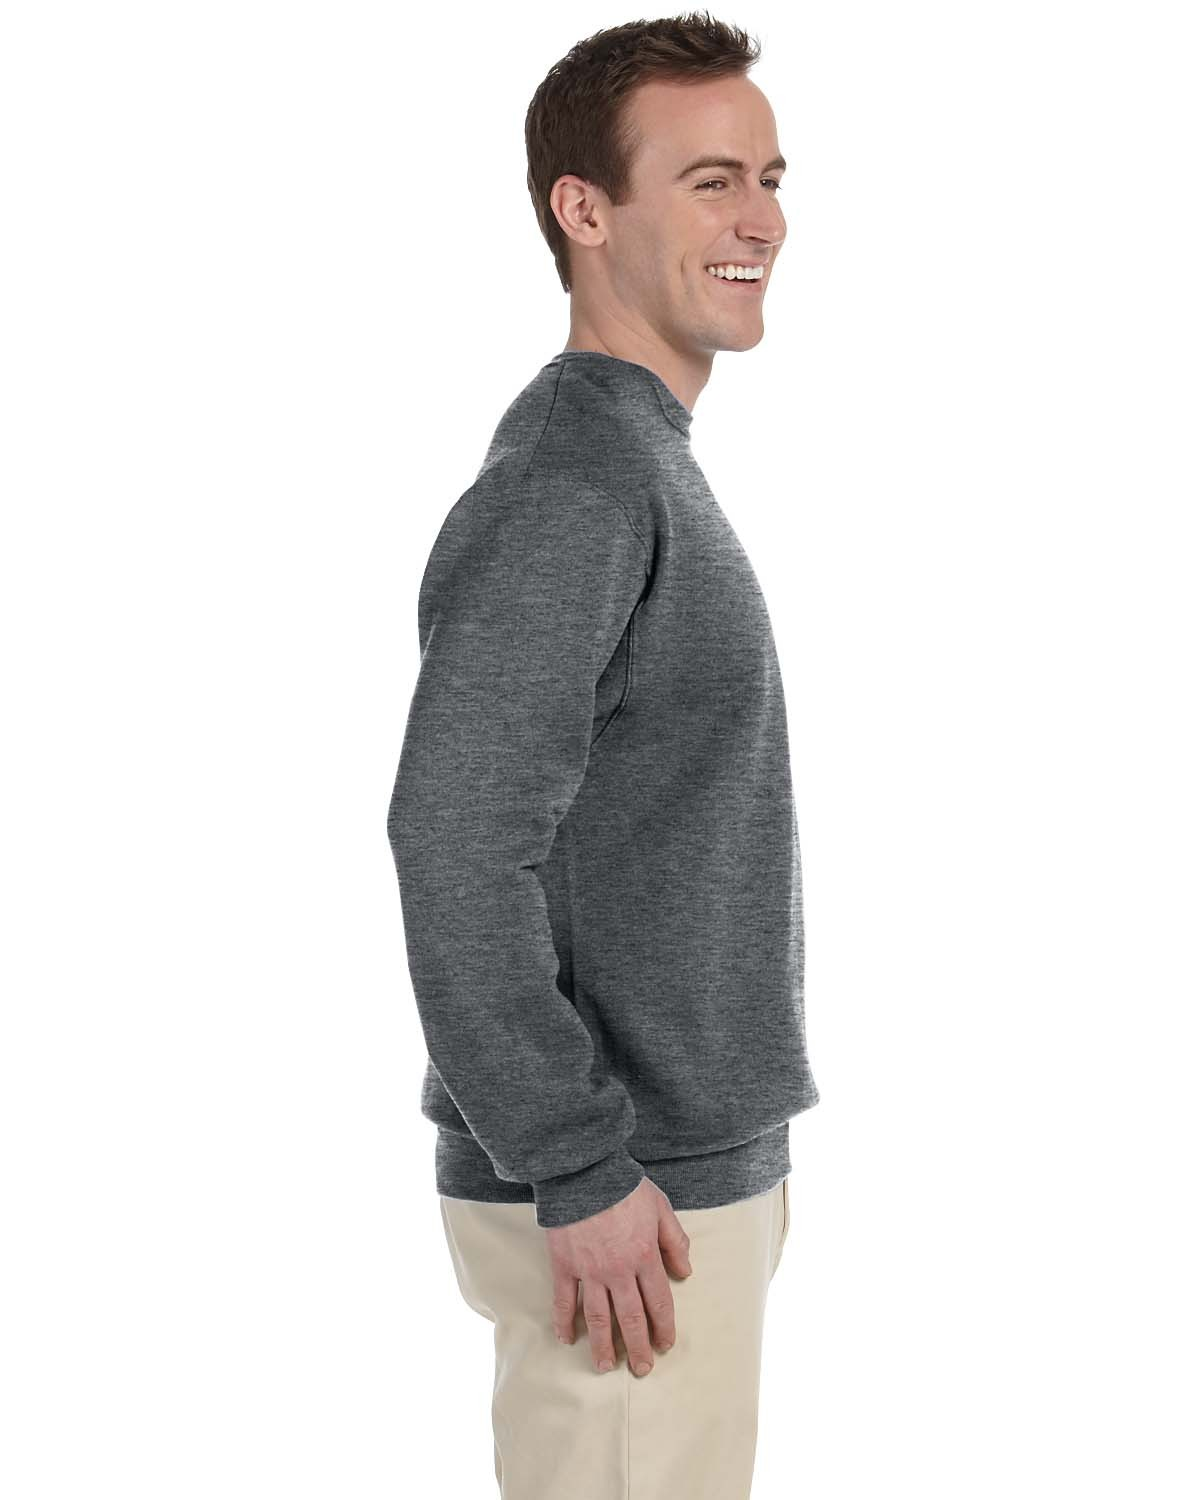 82300 Fruit of the Loom ATHLETIC HEATHER